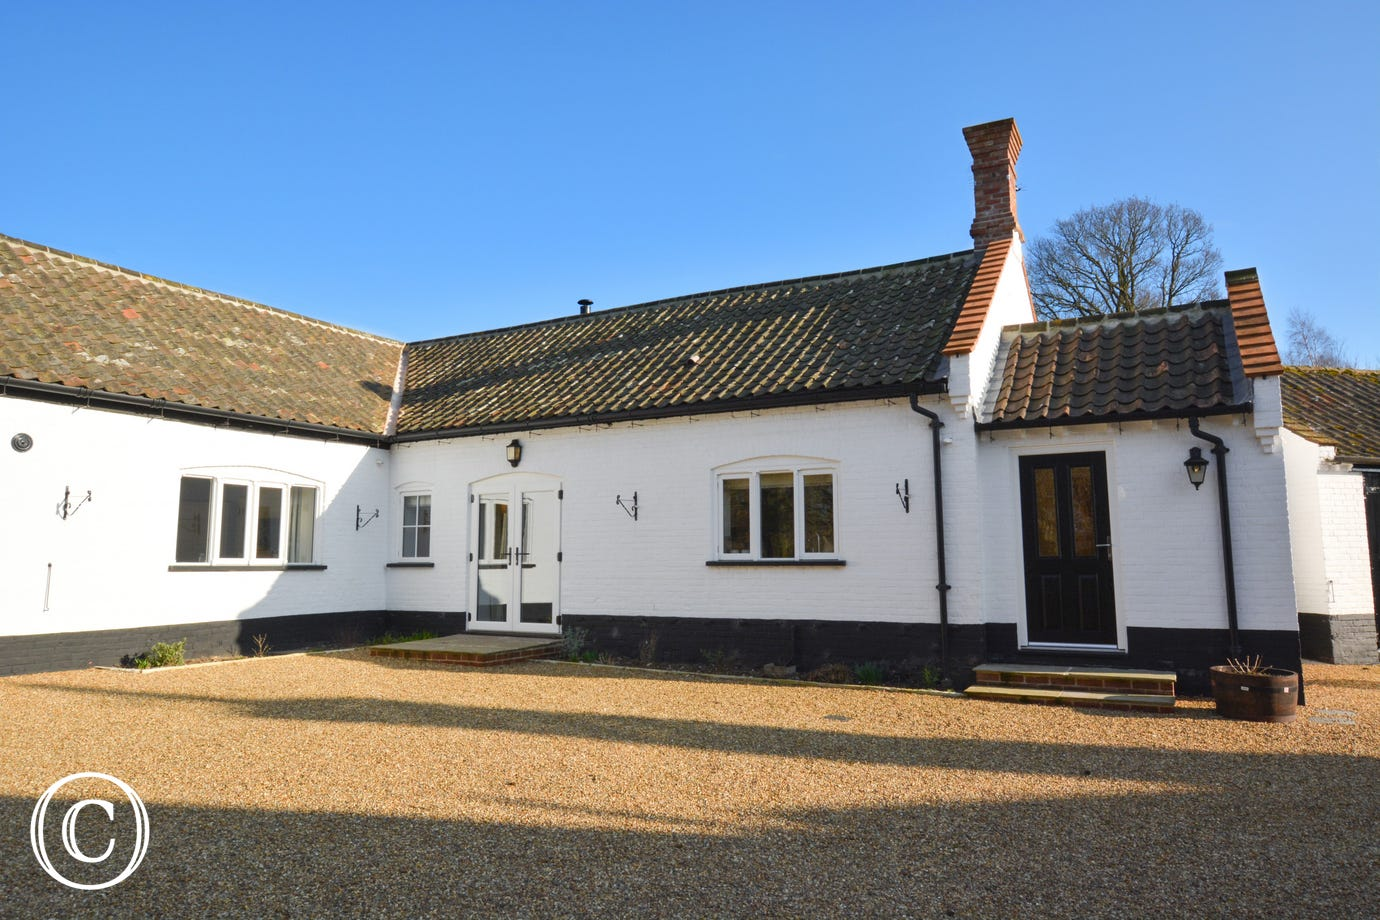 Exterior of Cottage with gravelled area